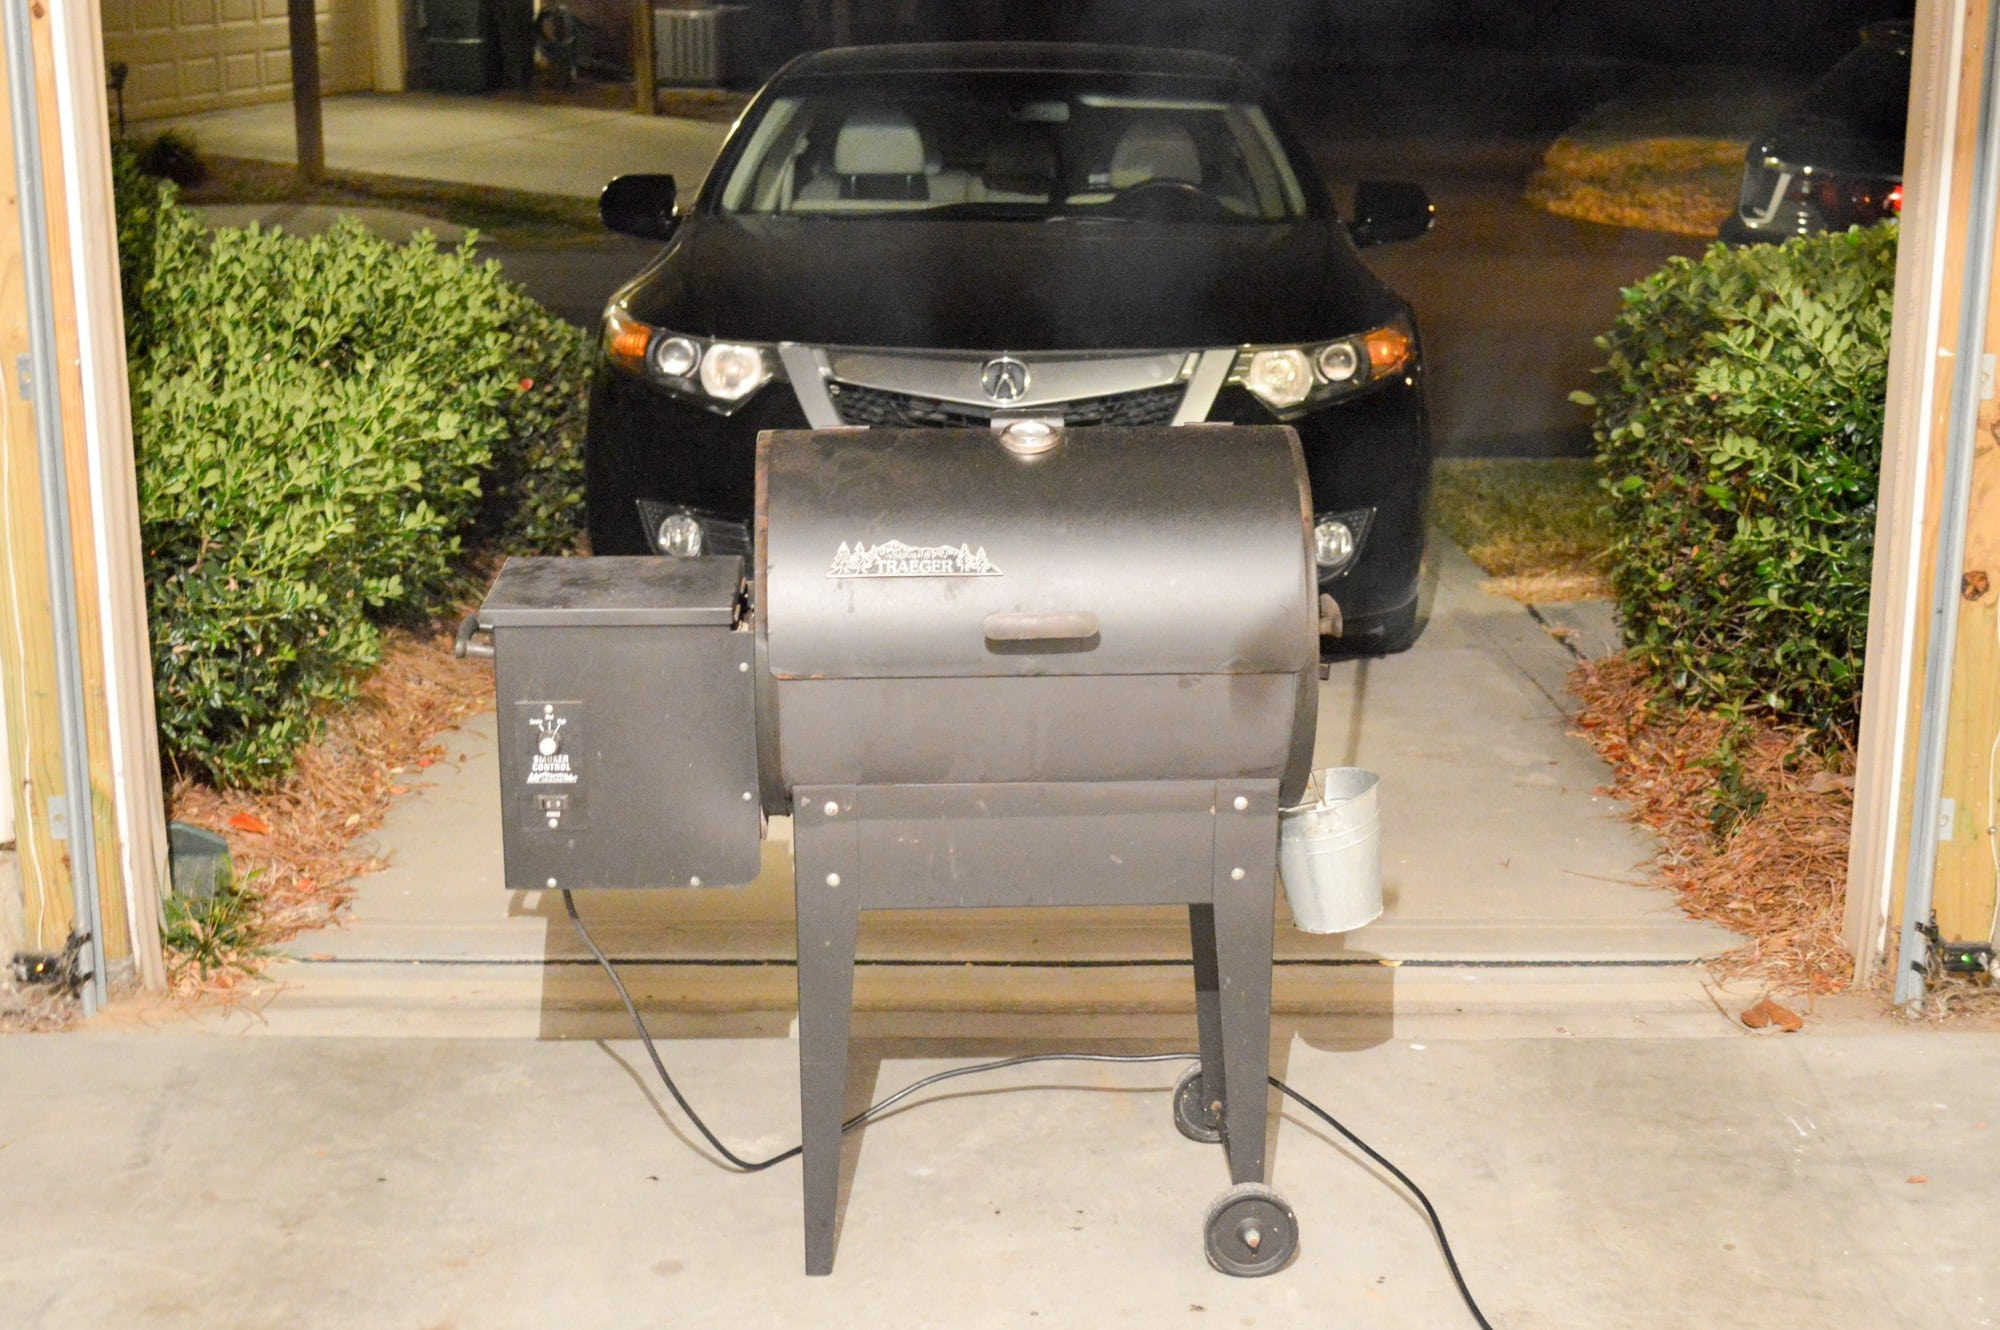 My Treager electric smoker hard at work cooking a family dinner.